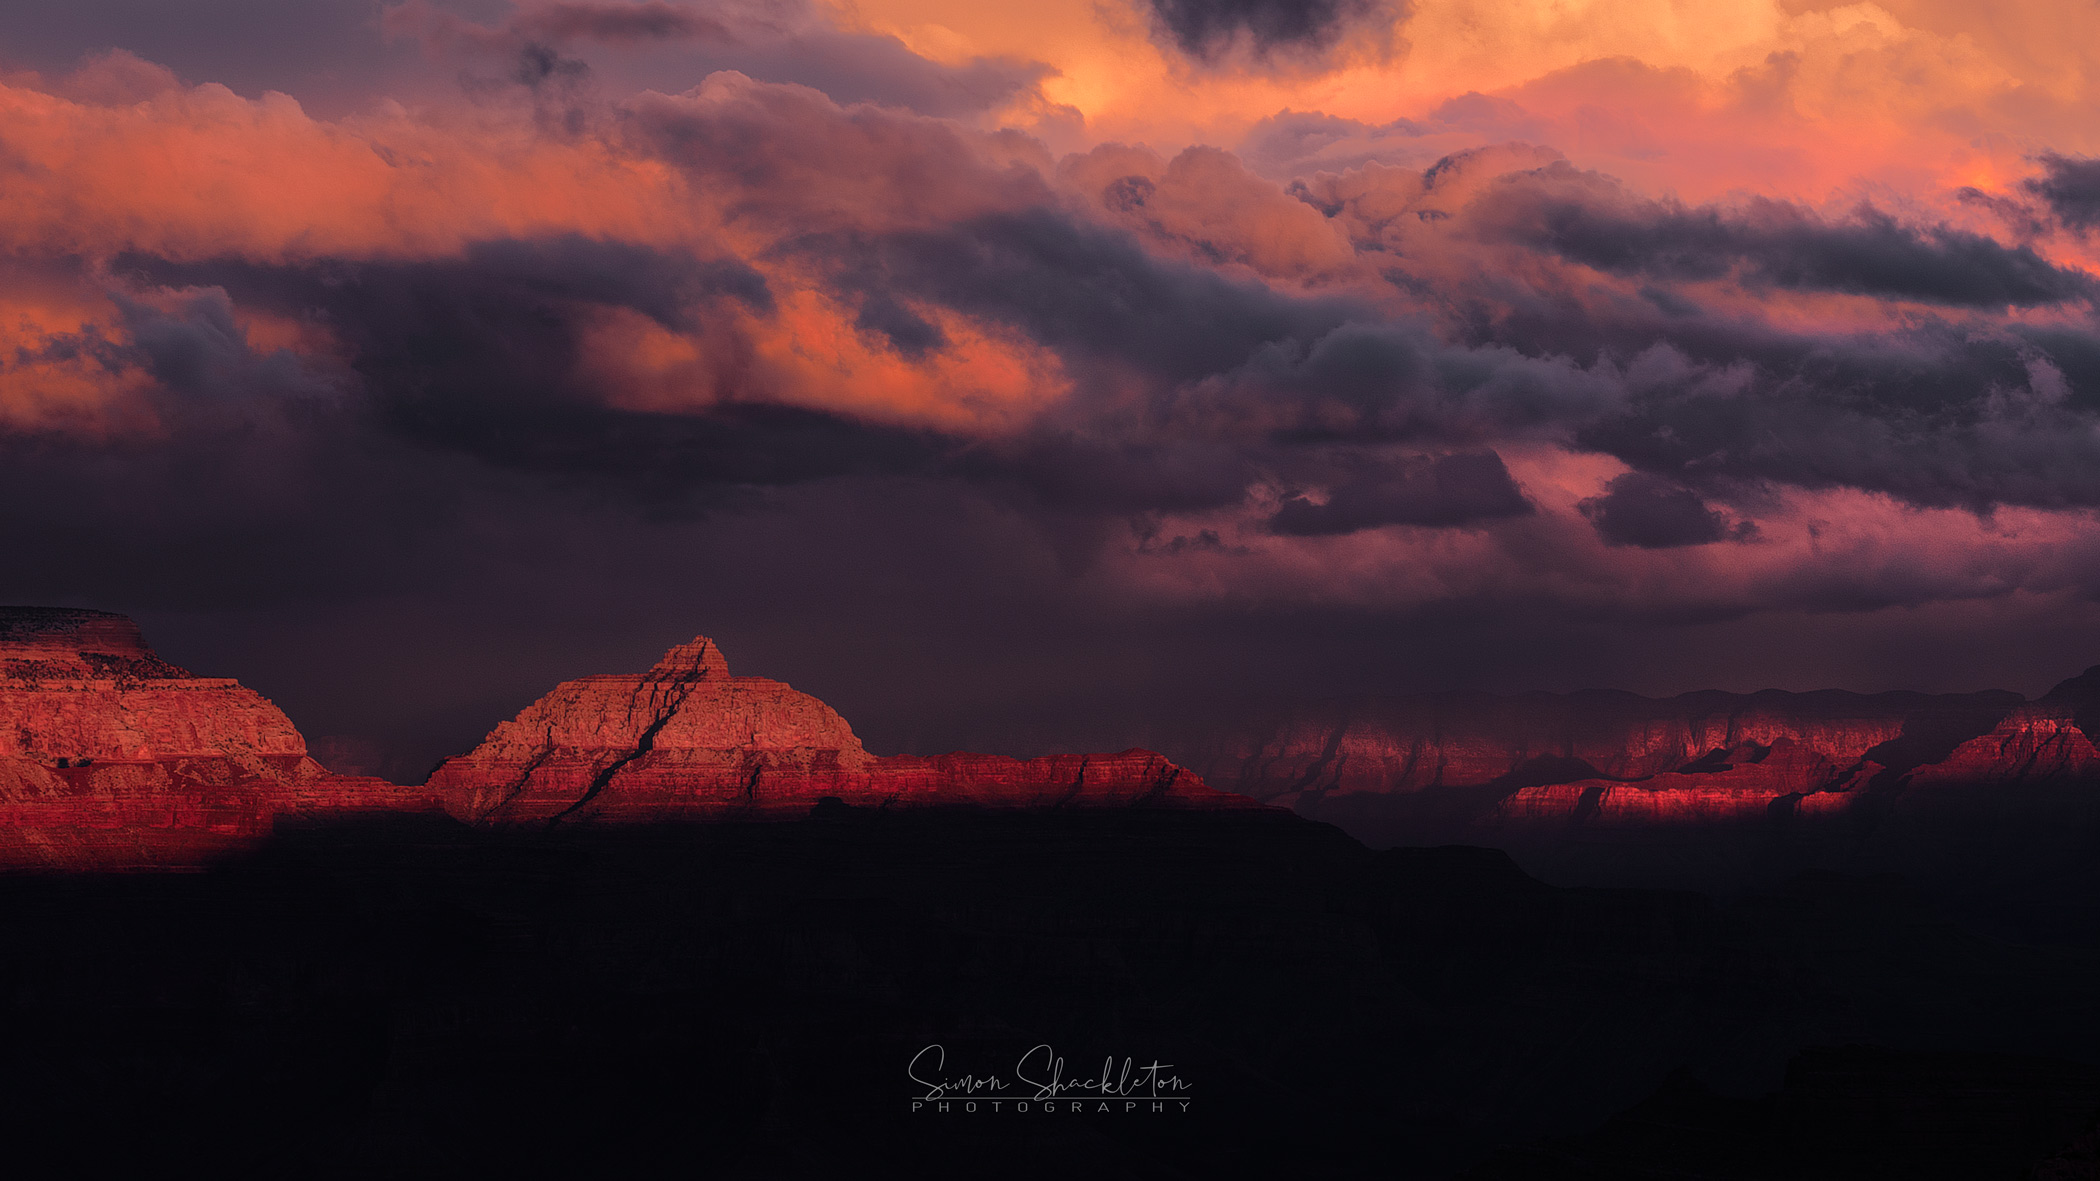 The Dying of the Light - a Grand Canyon Sunset.